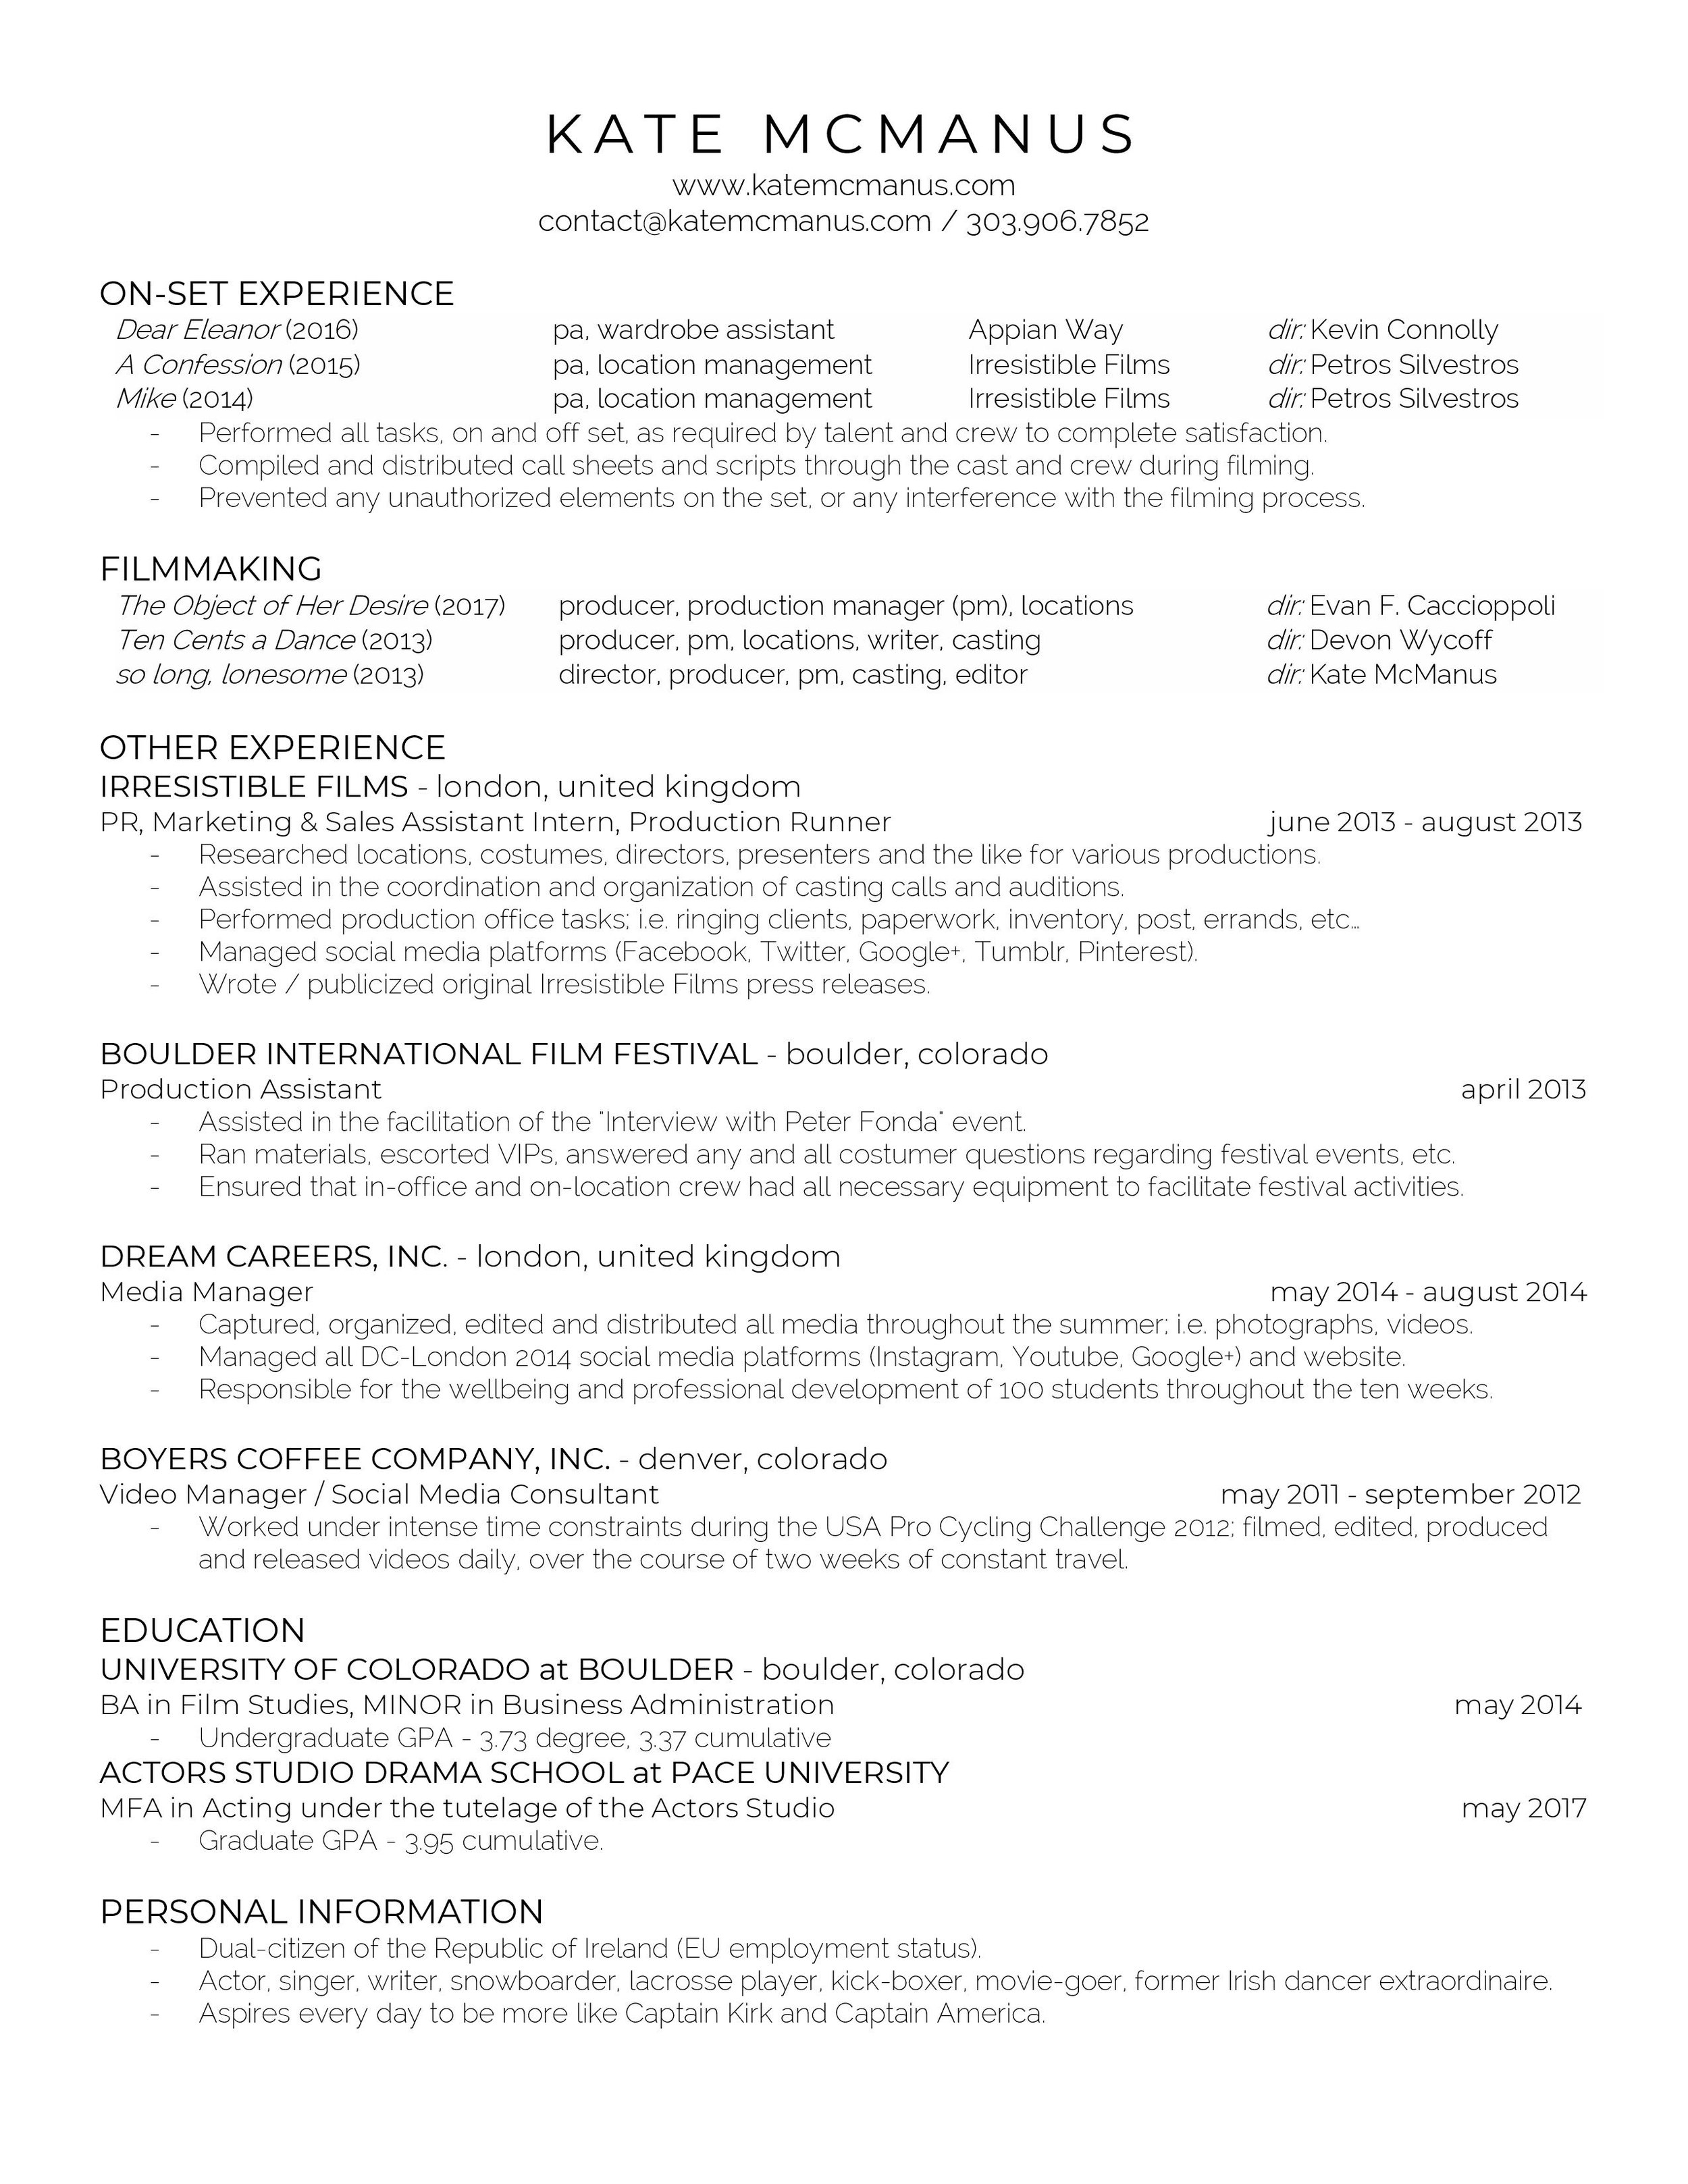 Kate McManus - Film Resume-page-001.jpg